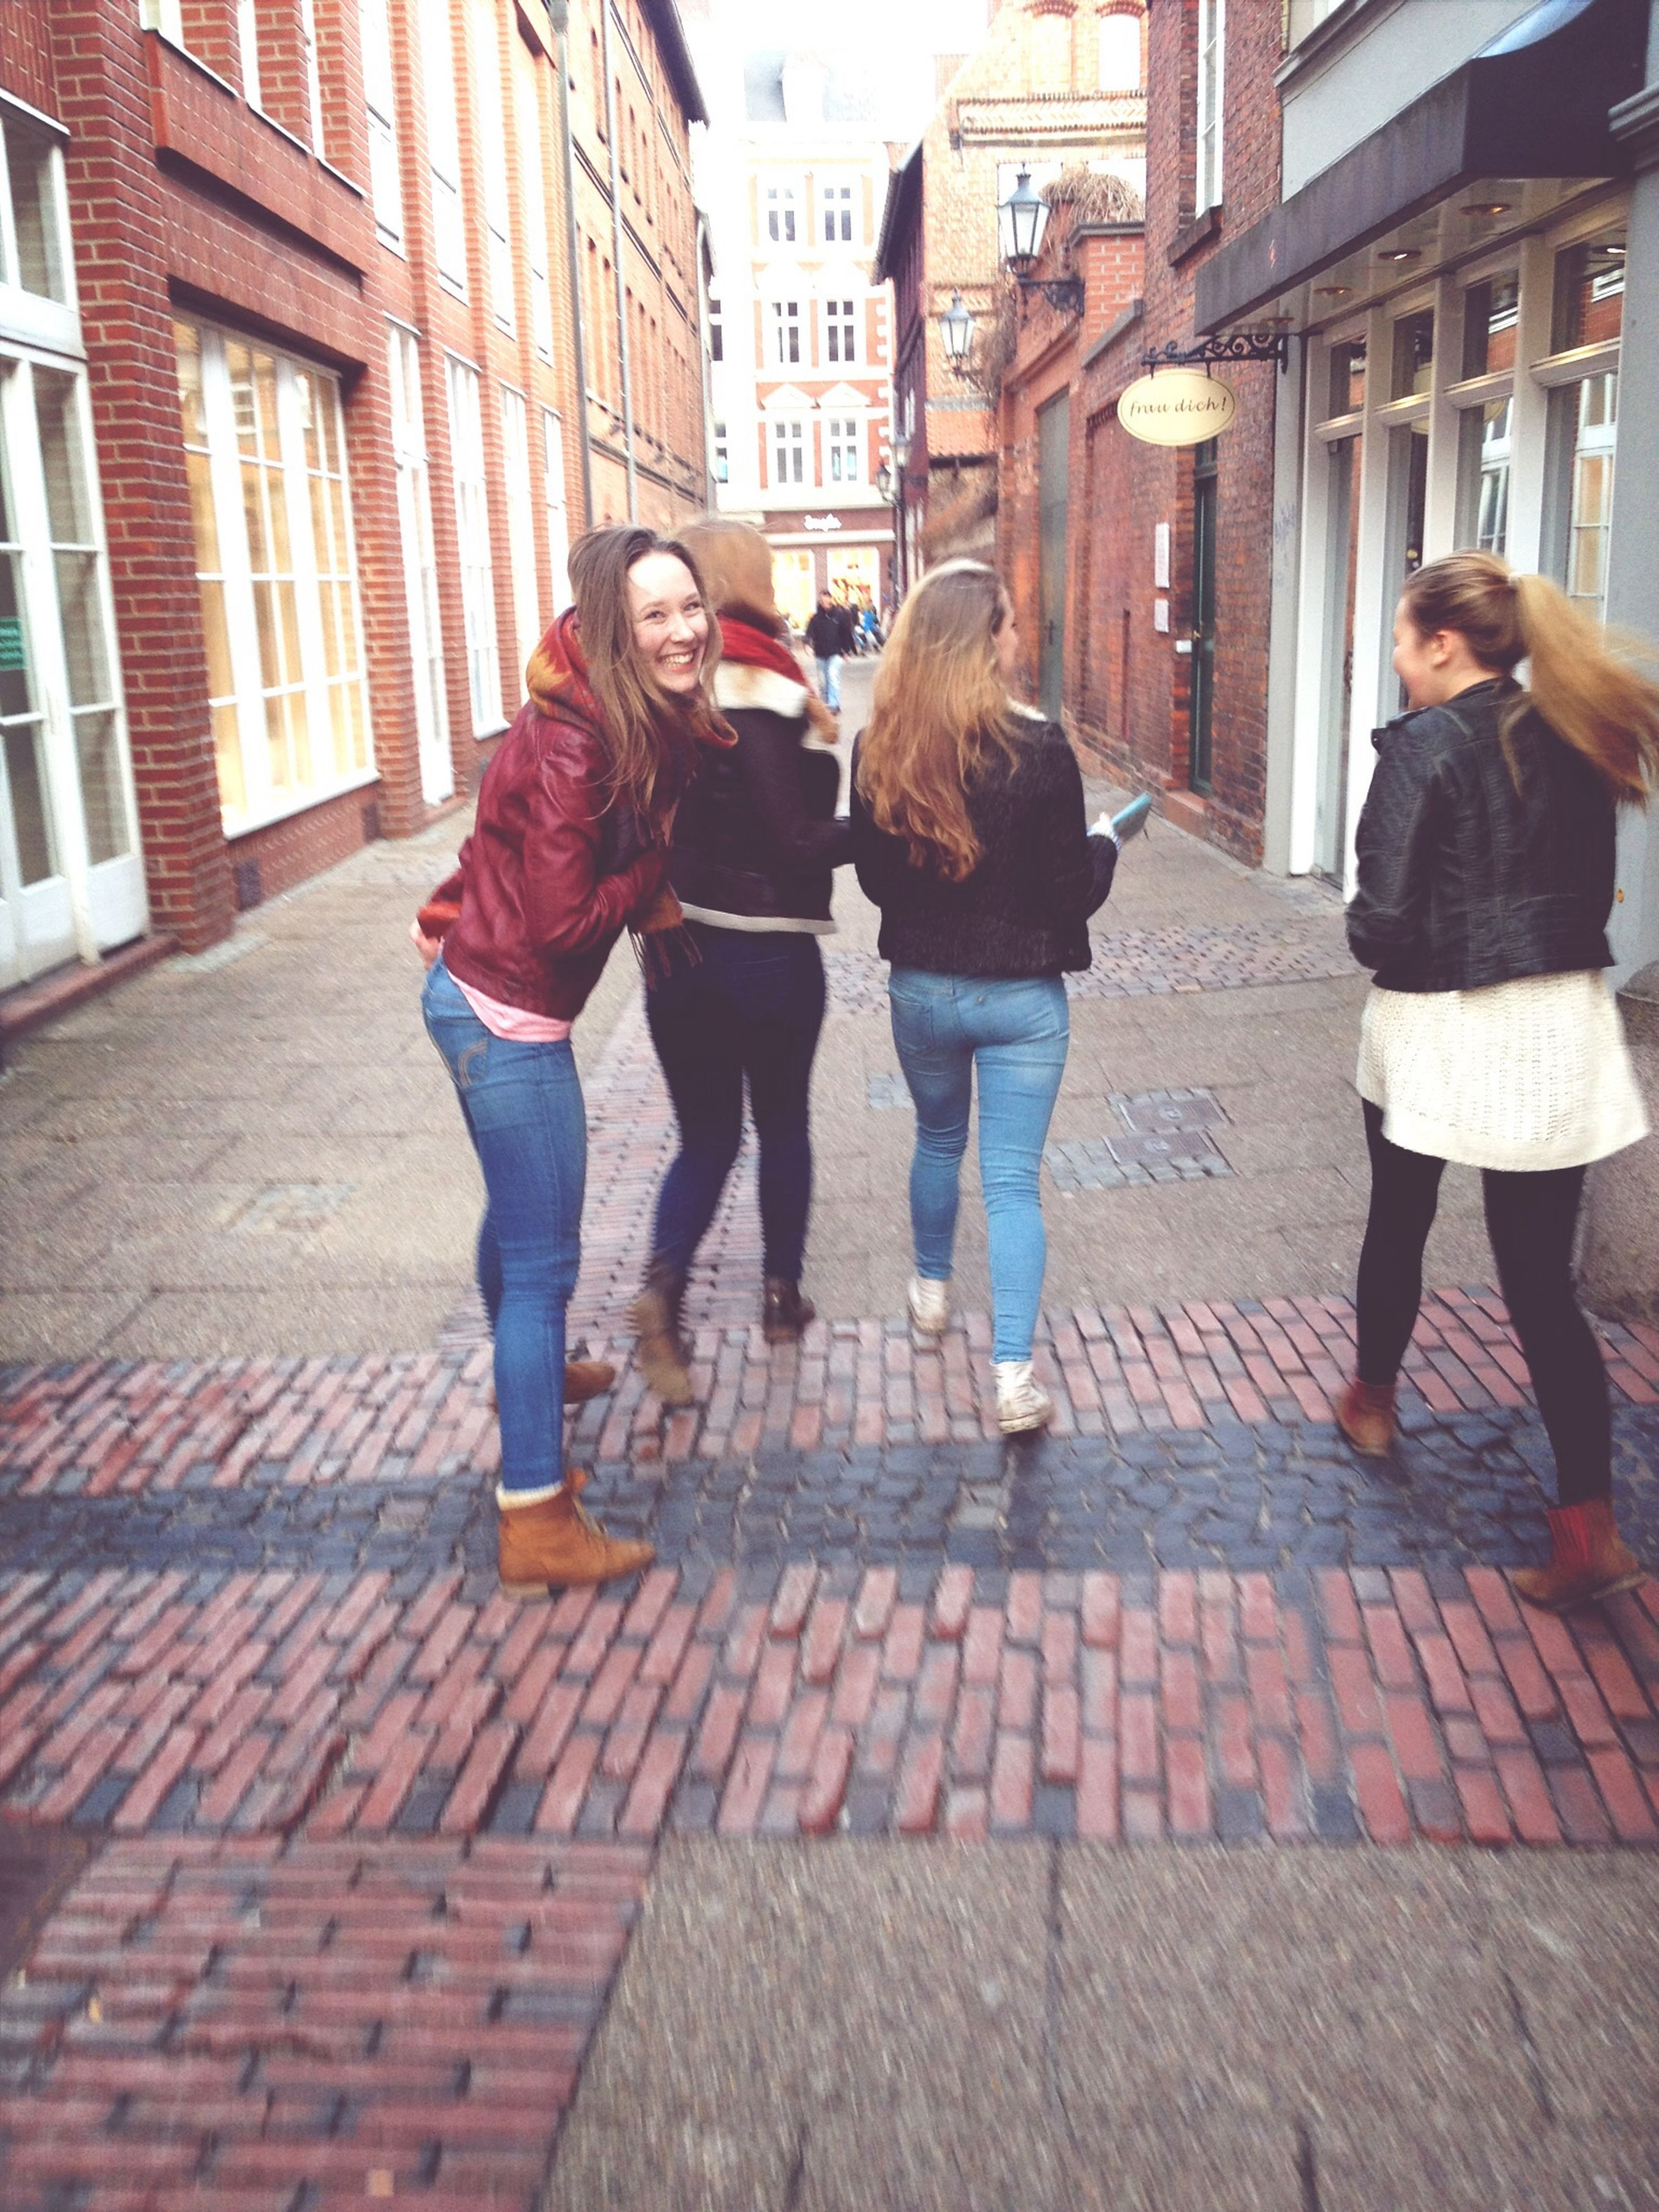 building exterior, lifestyles, architecture, built structure, full length, leisure activity, togetherness, casual clothing, bonding, city, men, city life, friendship, young men, love, walking, standing, person